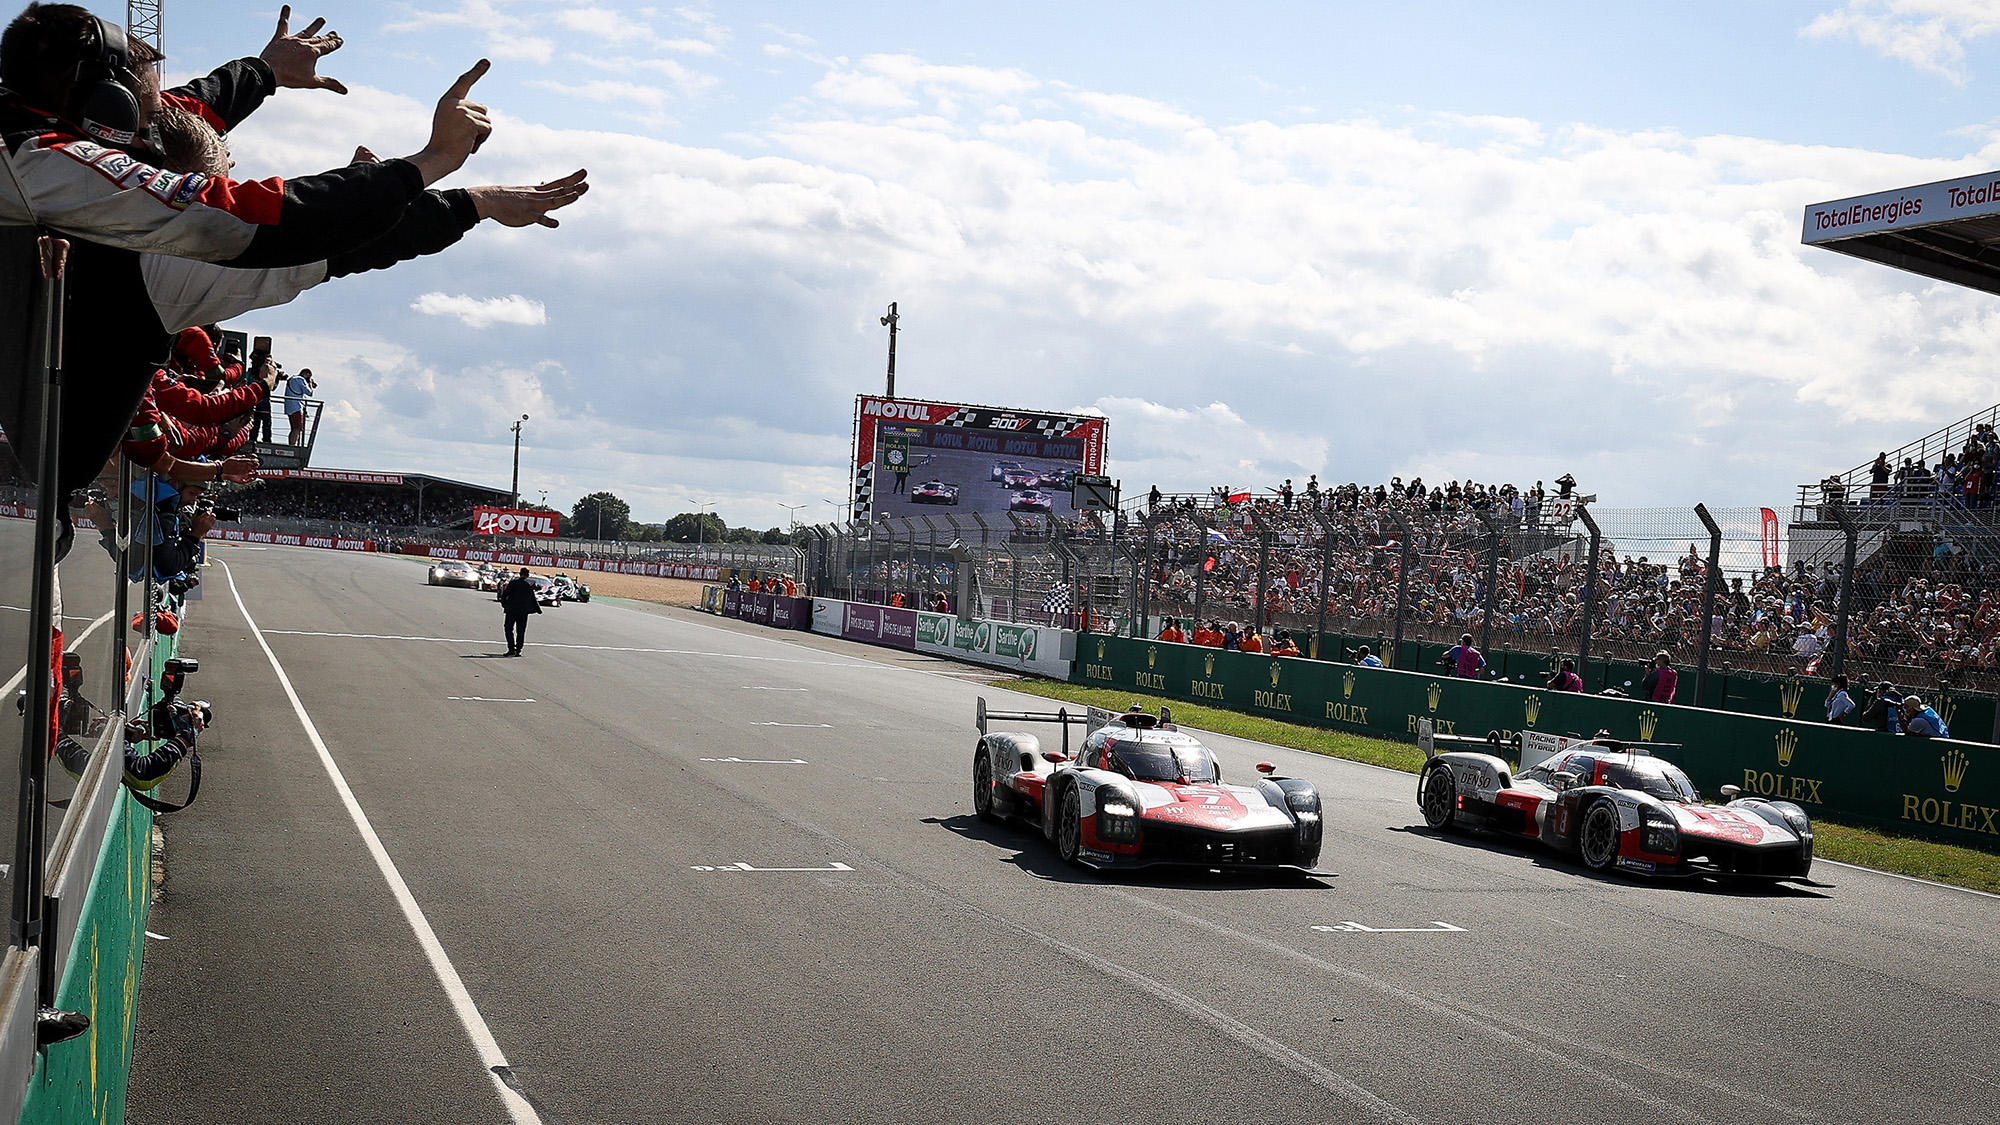 Toyotas cross the line to win the 2021 Le Mans 24 Hours